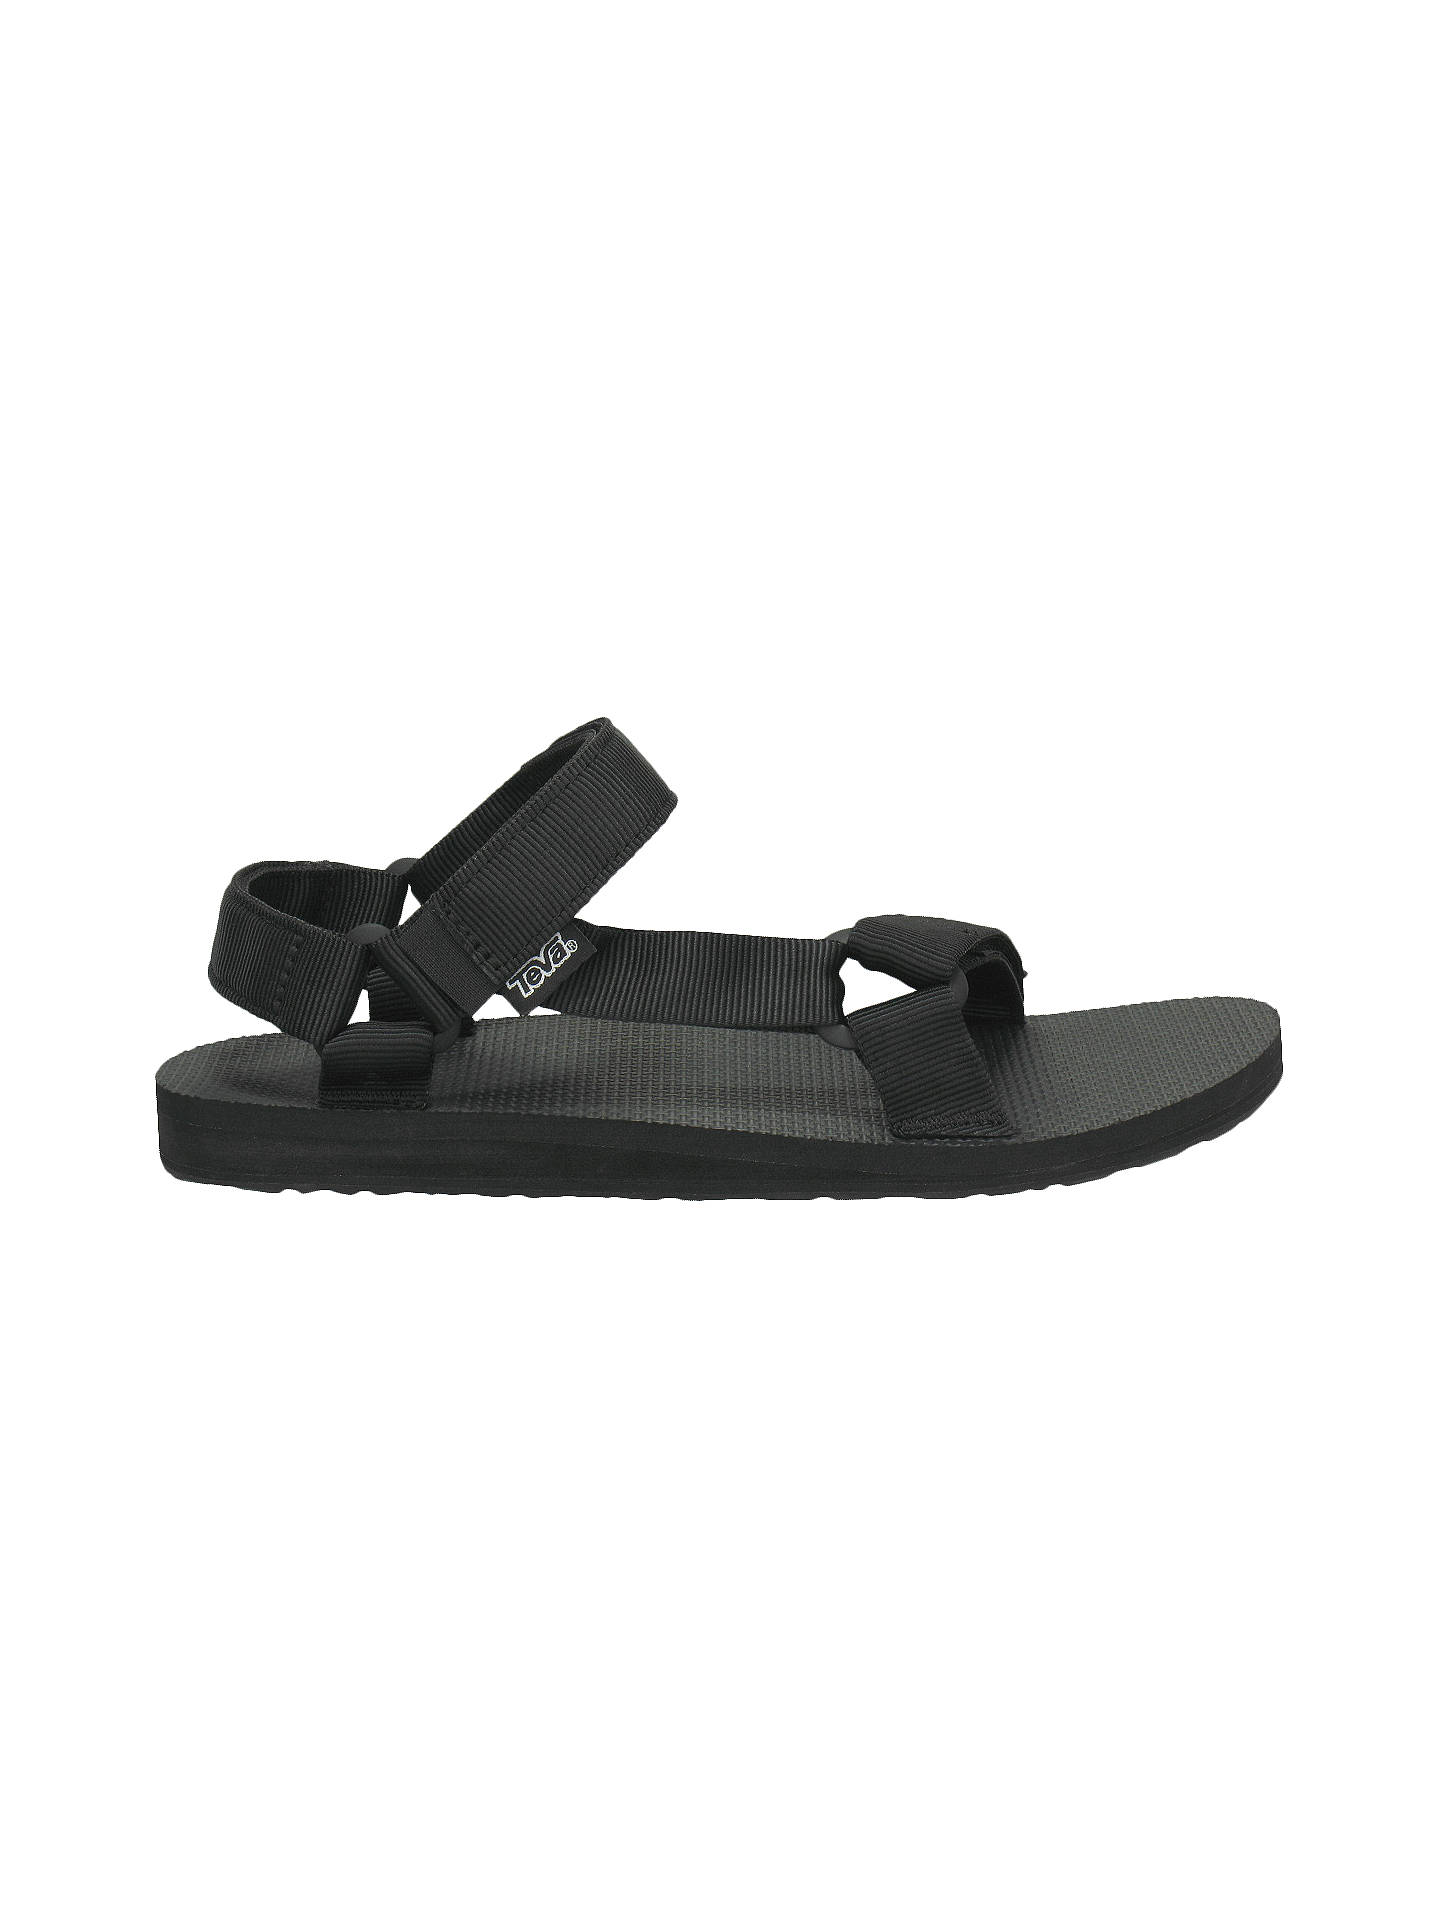 a24bae568b59 Buy Teva Original Universal Men s Sandals